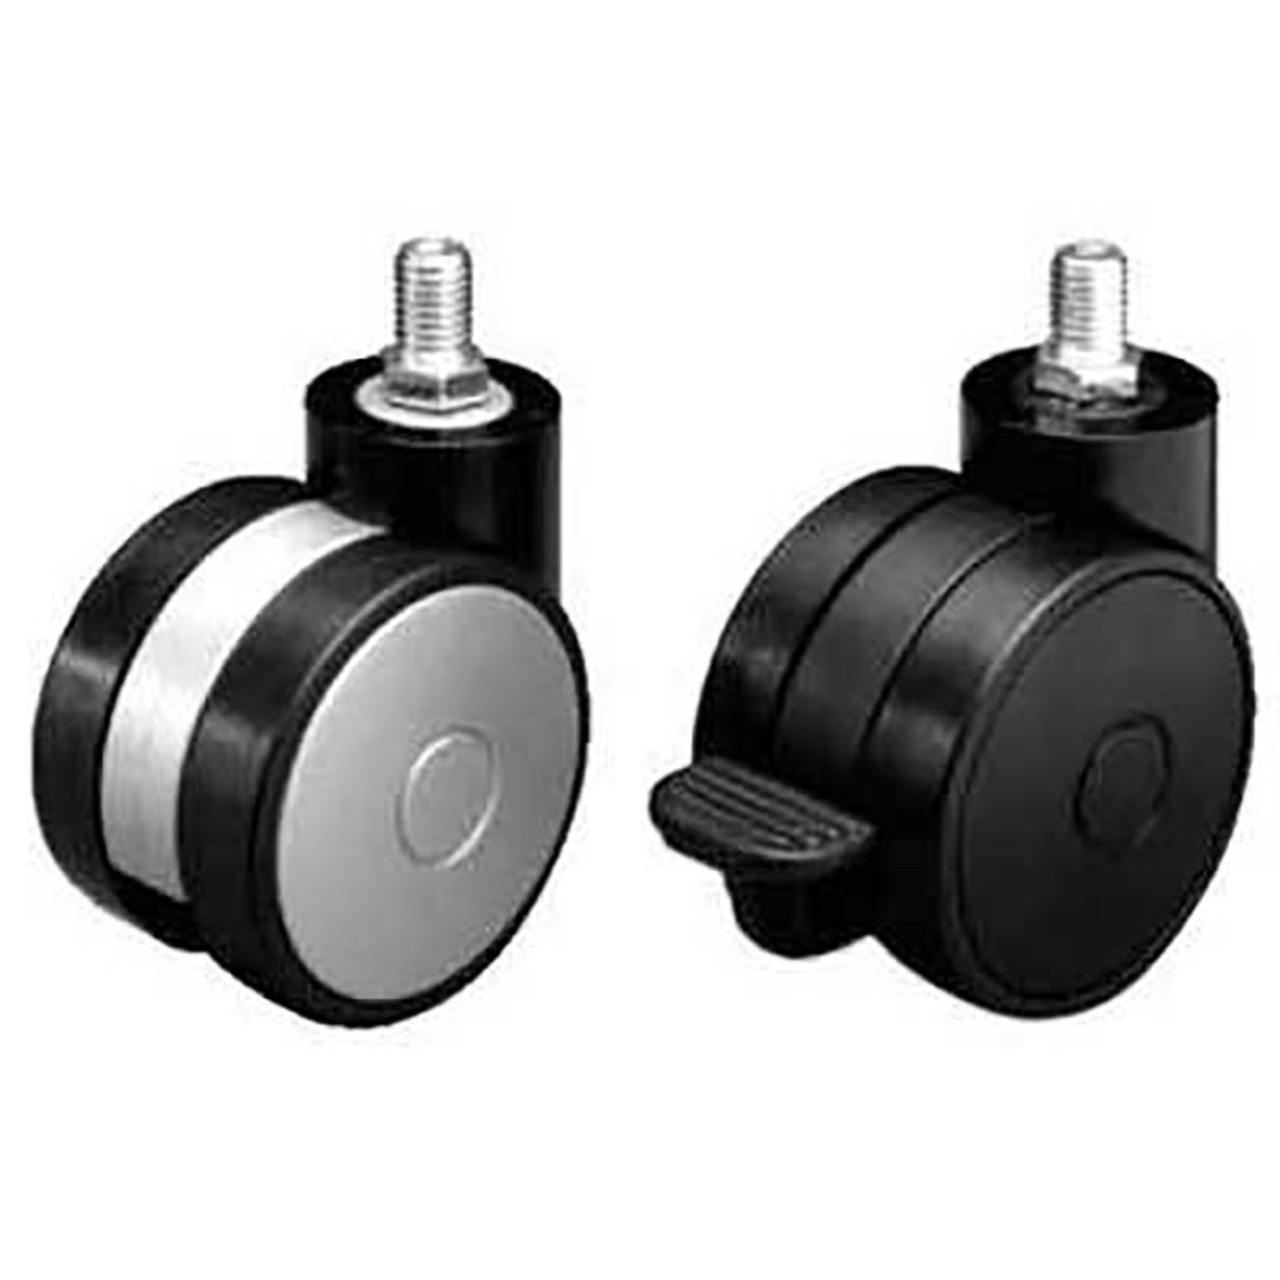 Swiveling Casters Thread Stem Mount M10 Each Harbor